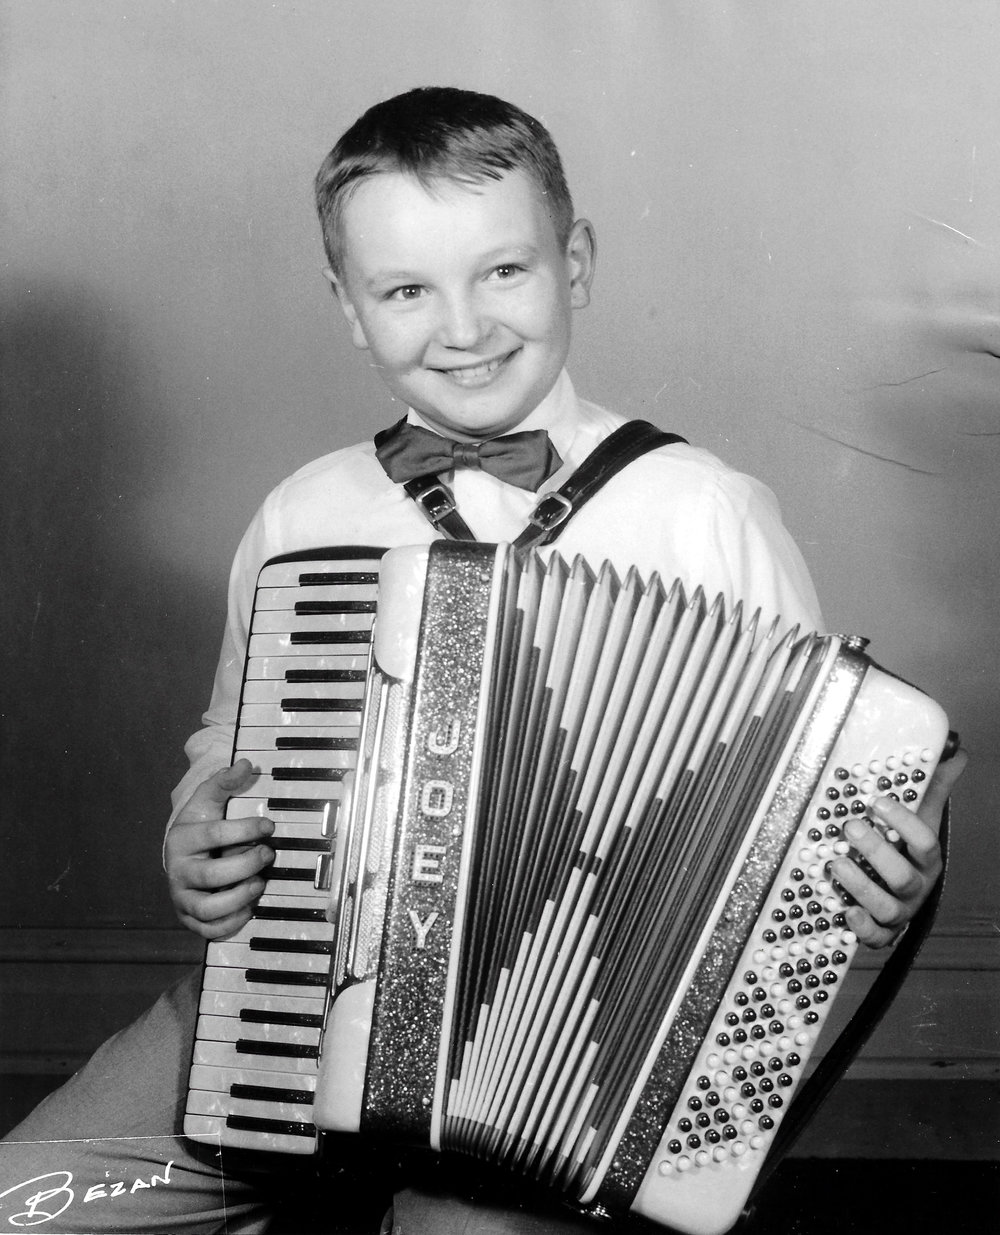 A young Whiting accordion student.